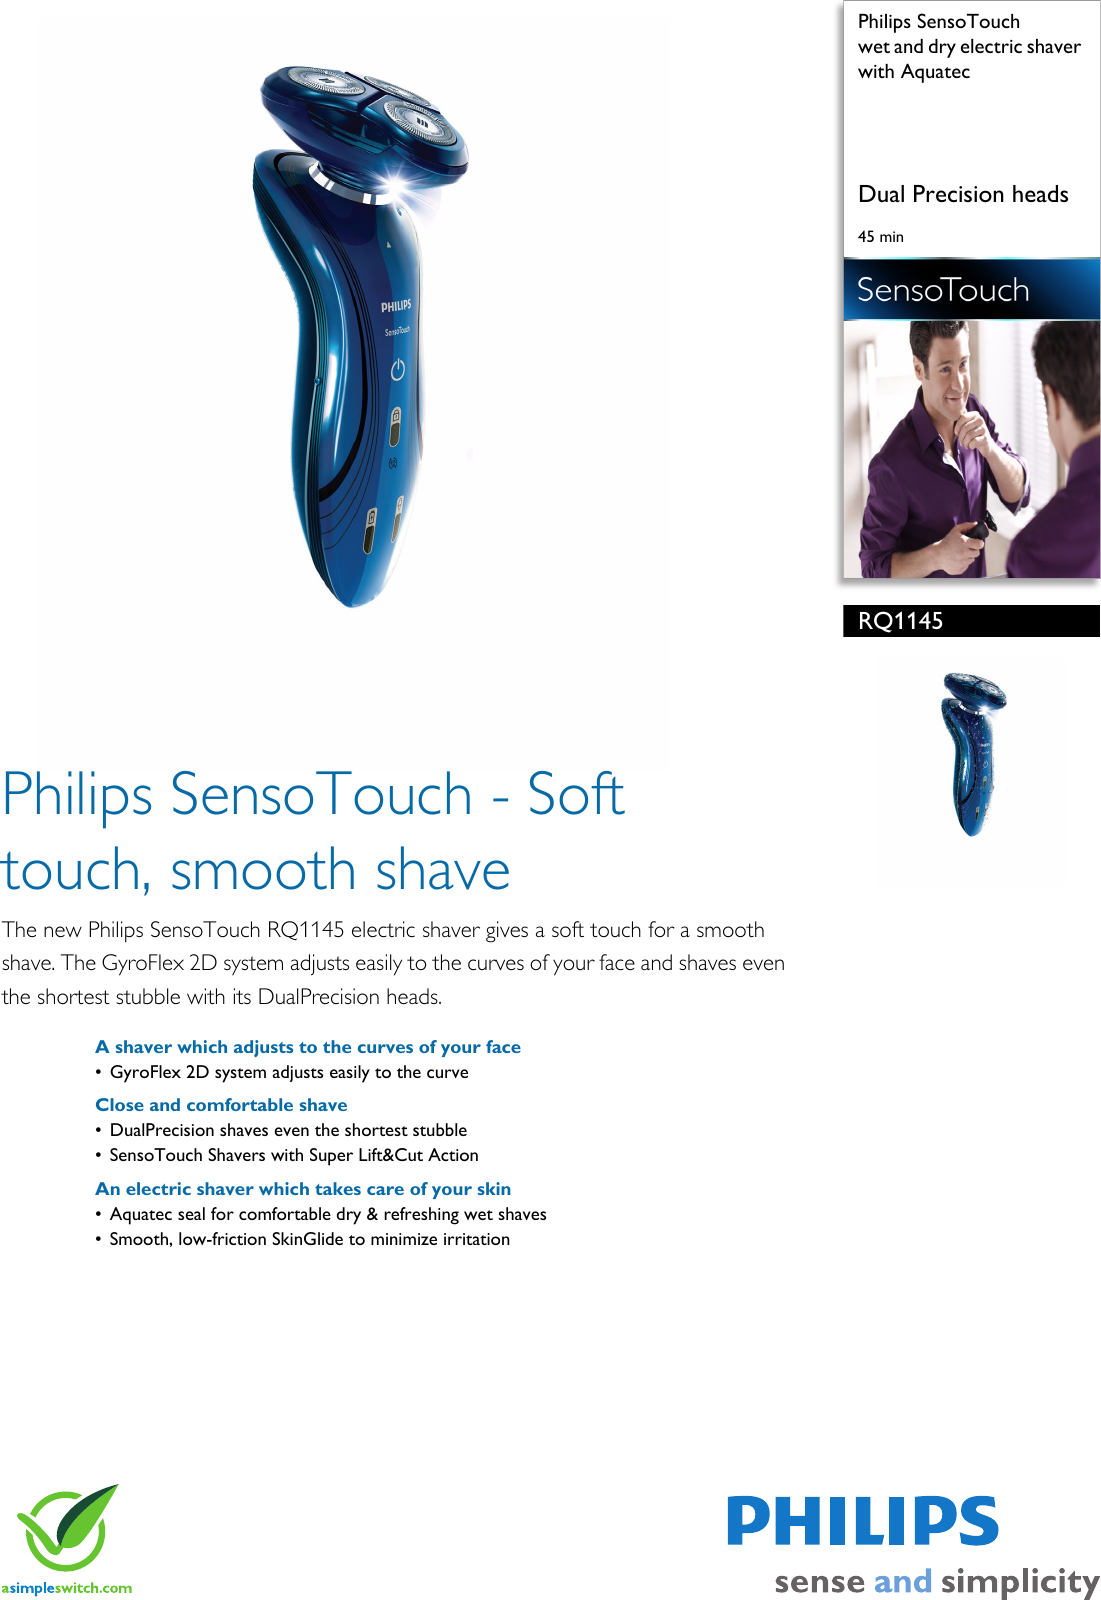 Philips RQ1145 16 Wet And Dry Electric Shaver With Aquatec Rq1145 16 Pss  Aenbe a4d81c84b1d